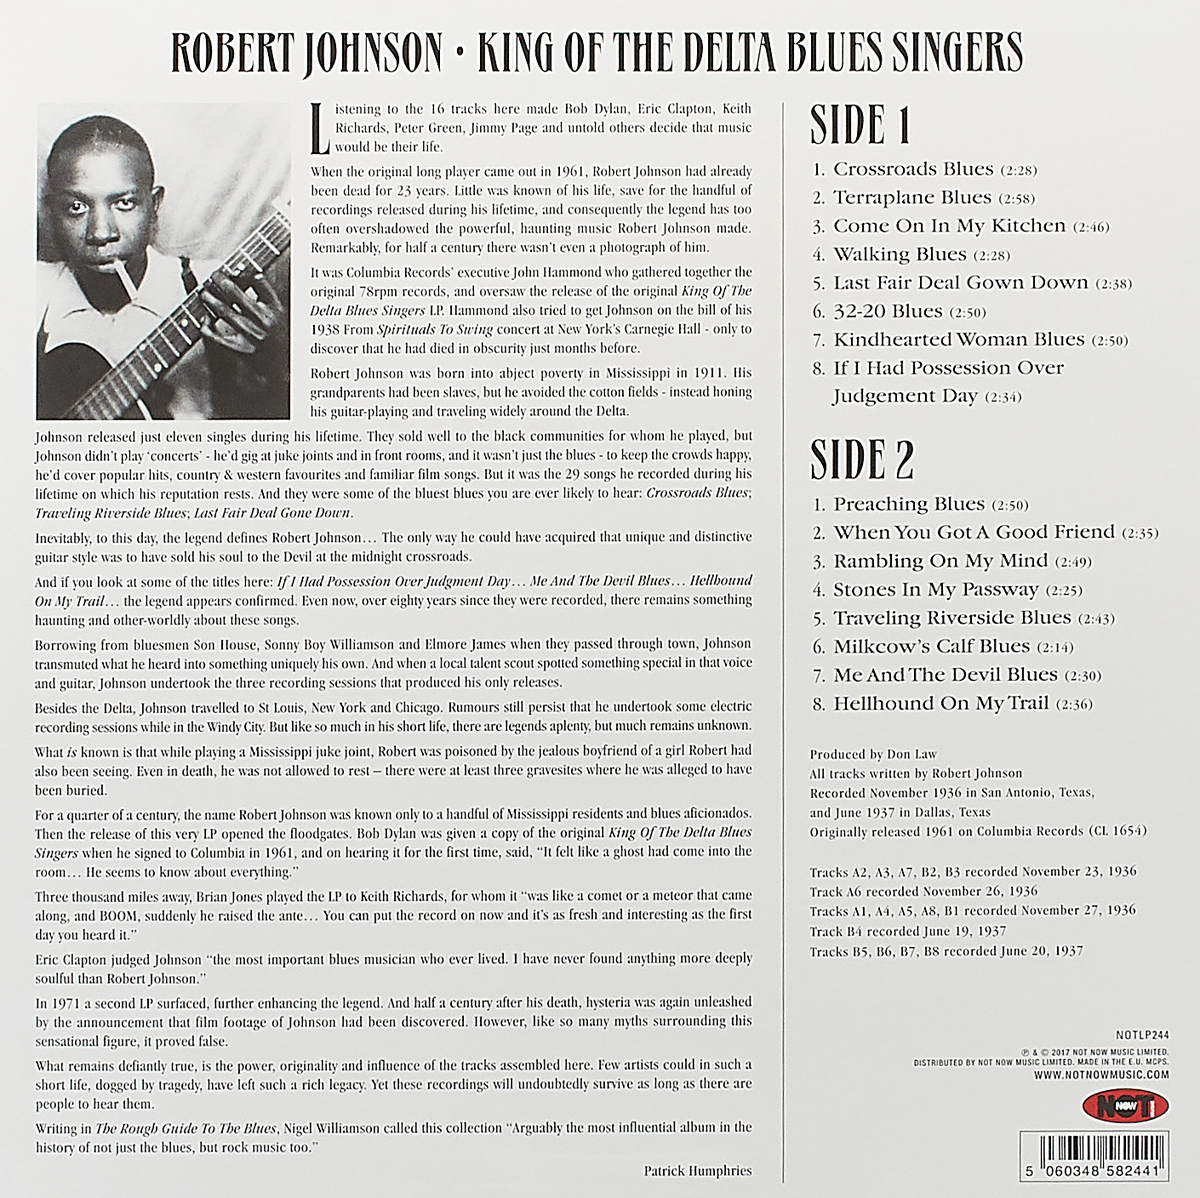 robert johnson the king of the delta blues singers Free essay: king of the delta blues singers: robert johnson the life of robert johnson, one of the most influential early blues artists, in shrouded by vague.